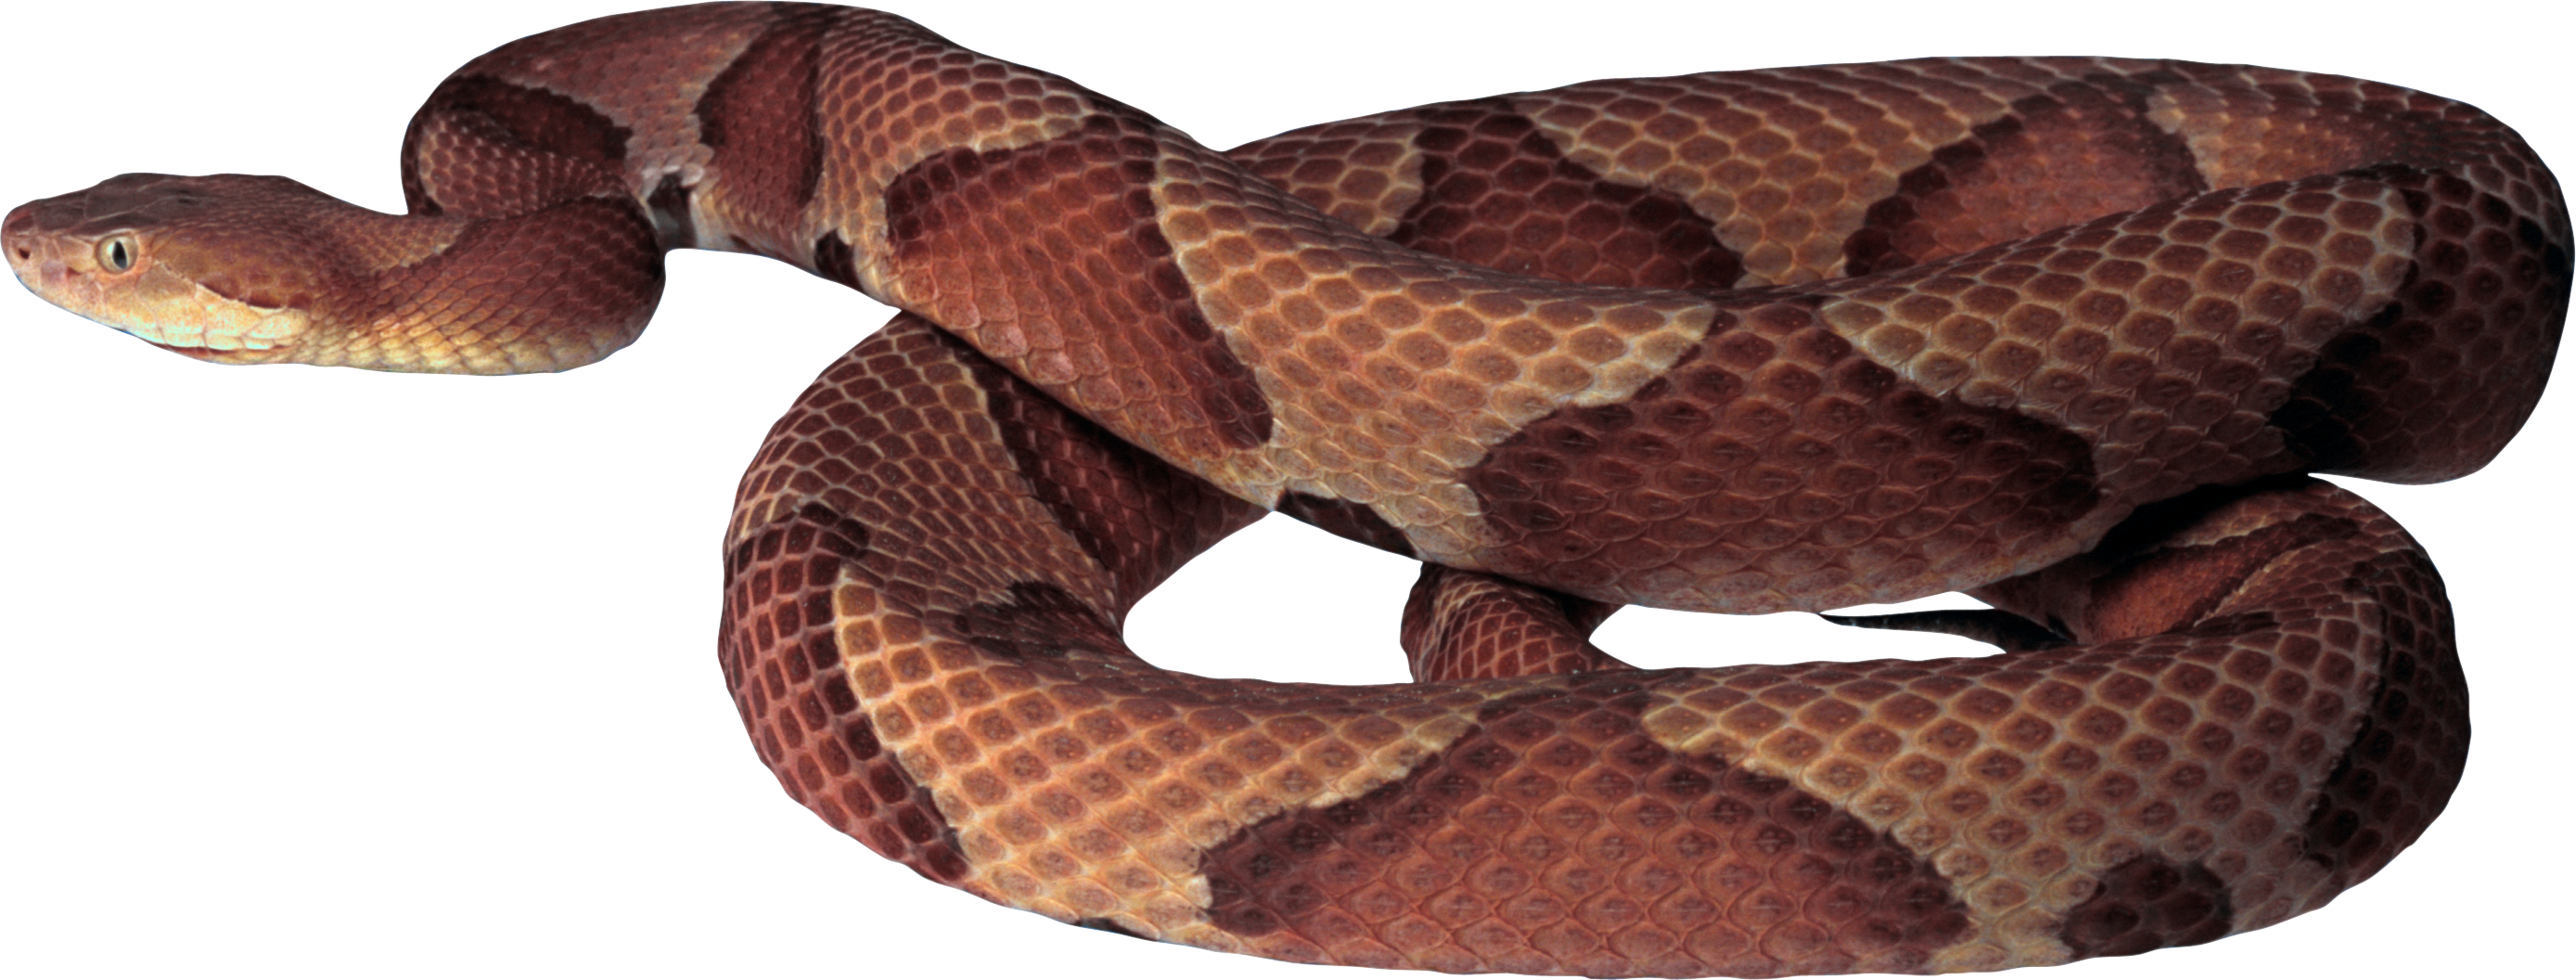 Twenty four isolated stock. Snake clipart tiger snake